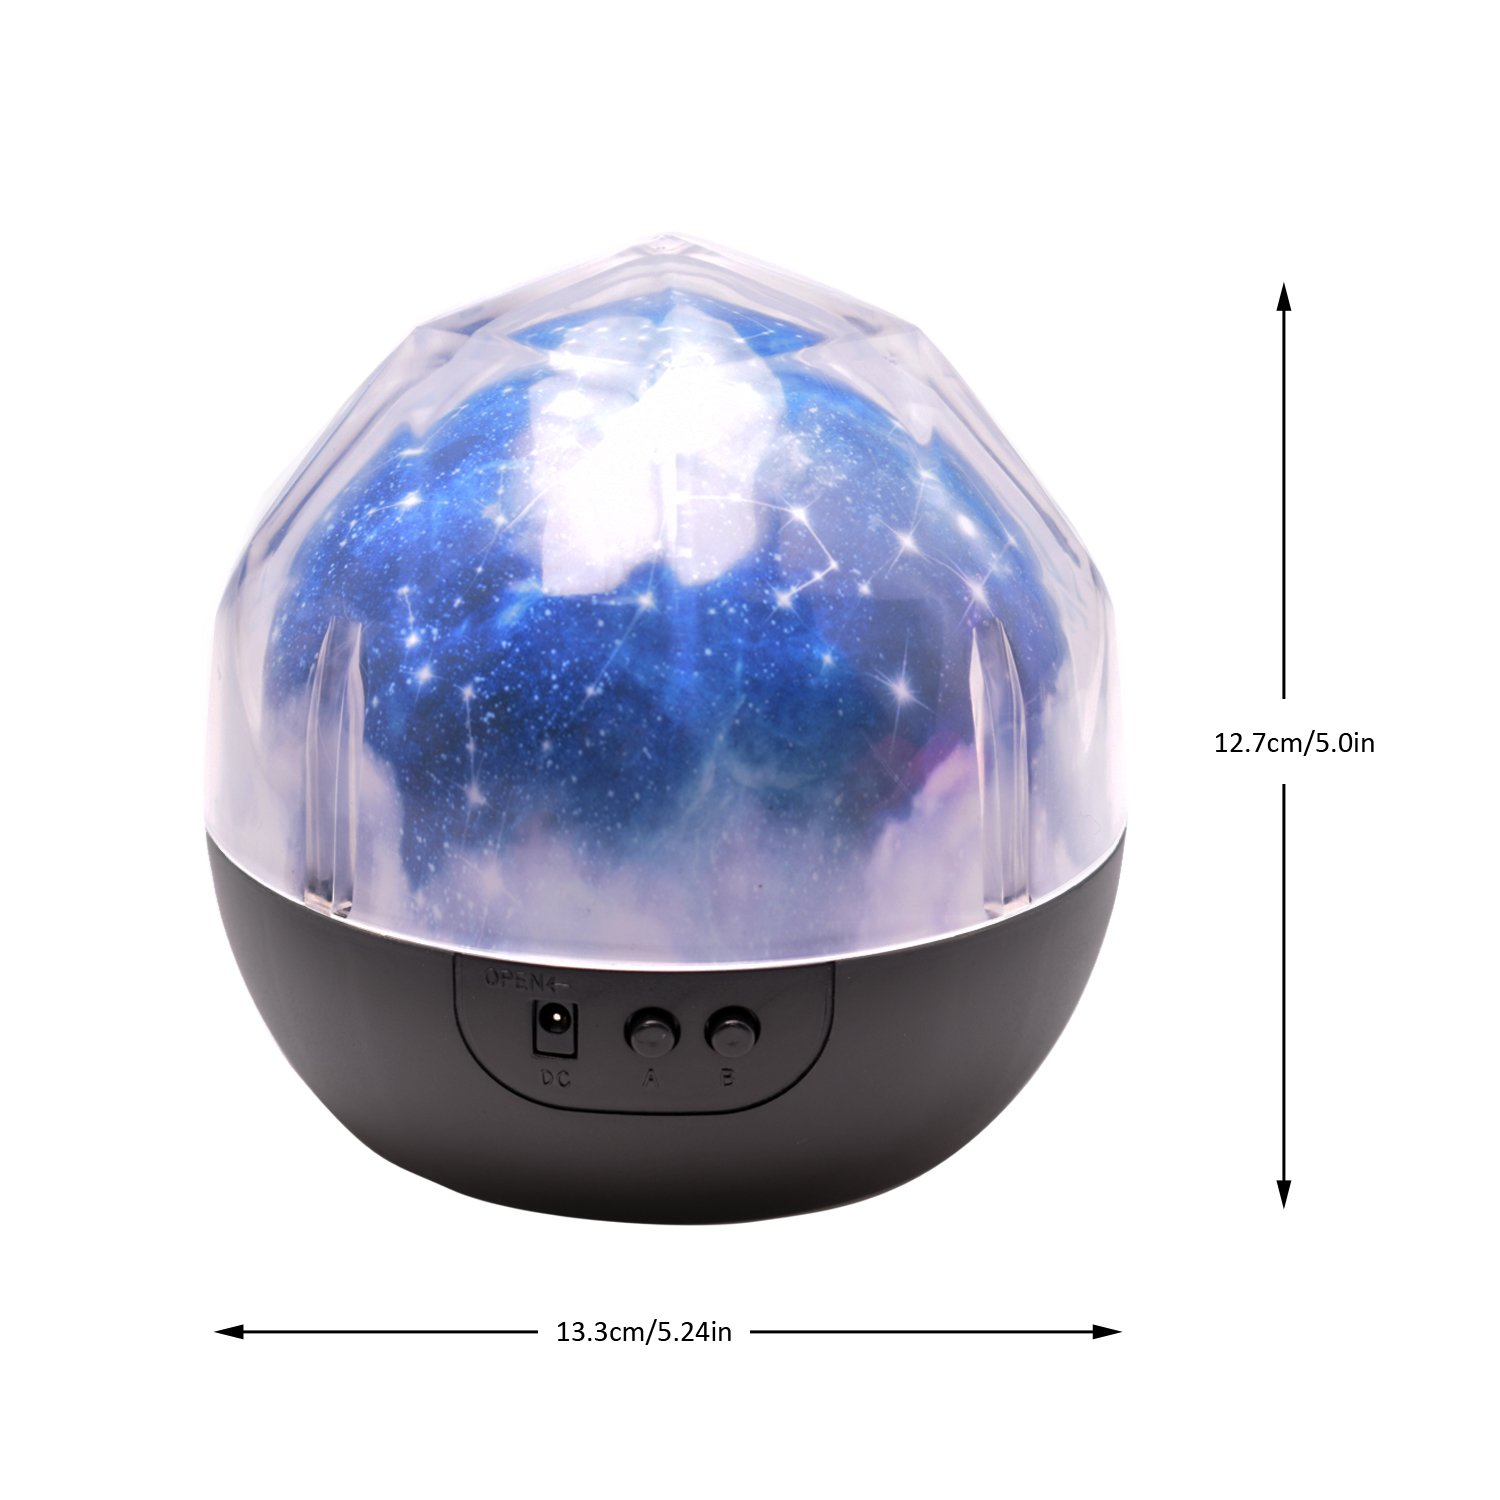 Star Night Light for Kids, Universe Night Light Projection Lamp, Romantic Star Sea Birthday New Projector lamp for Bedroom - 3 Sets of Film by Elmchee